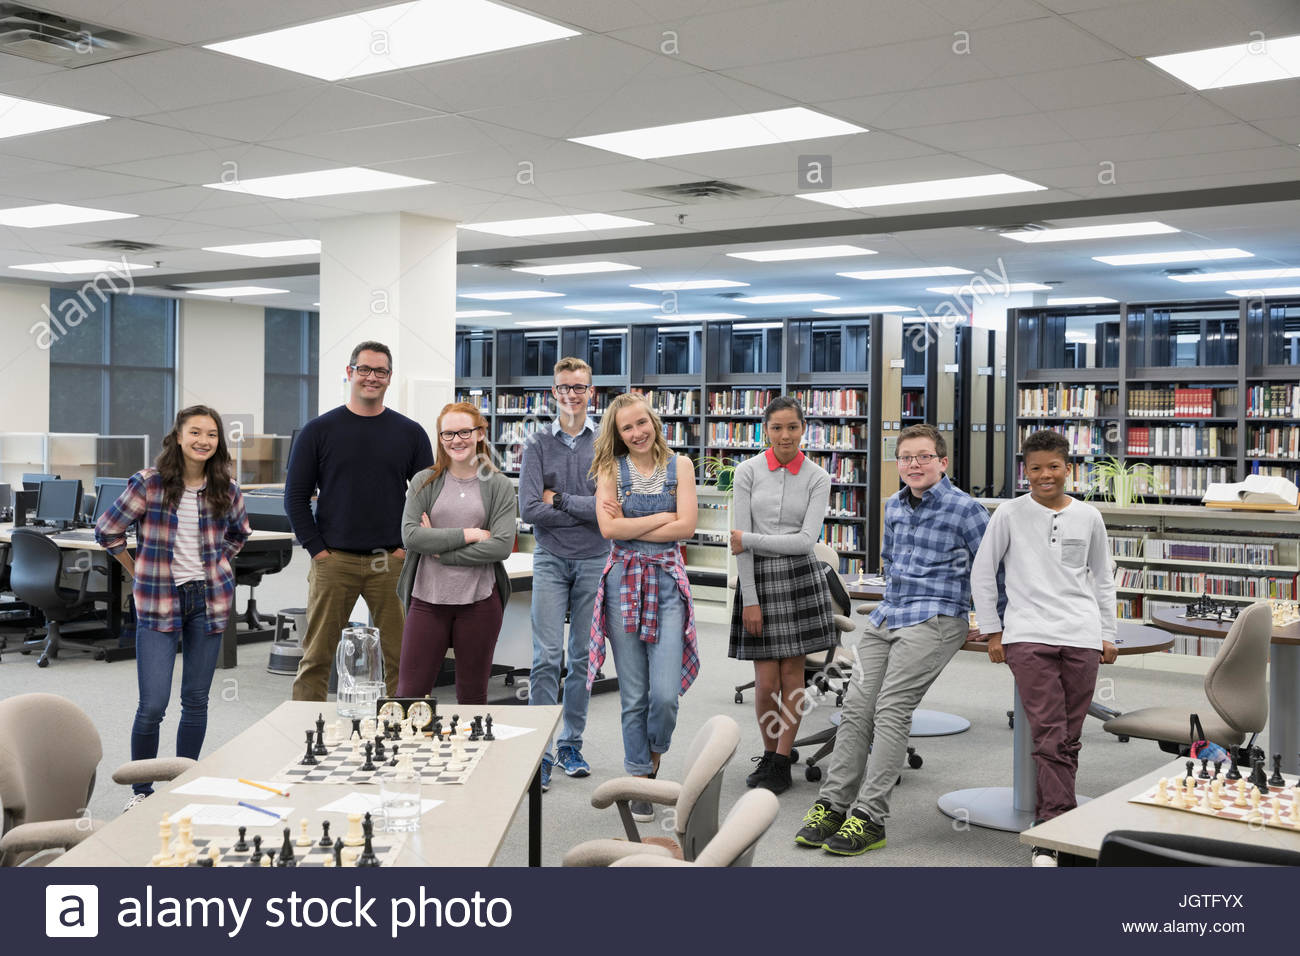 Portrait confident teacher and middle school student chess club in library - Stock Image